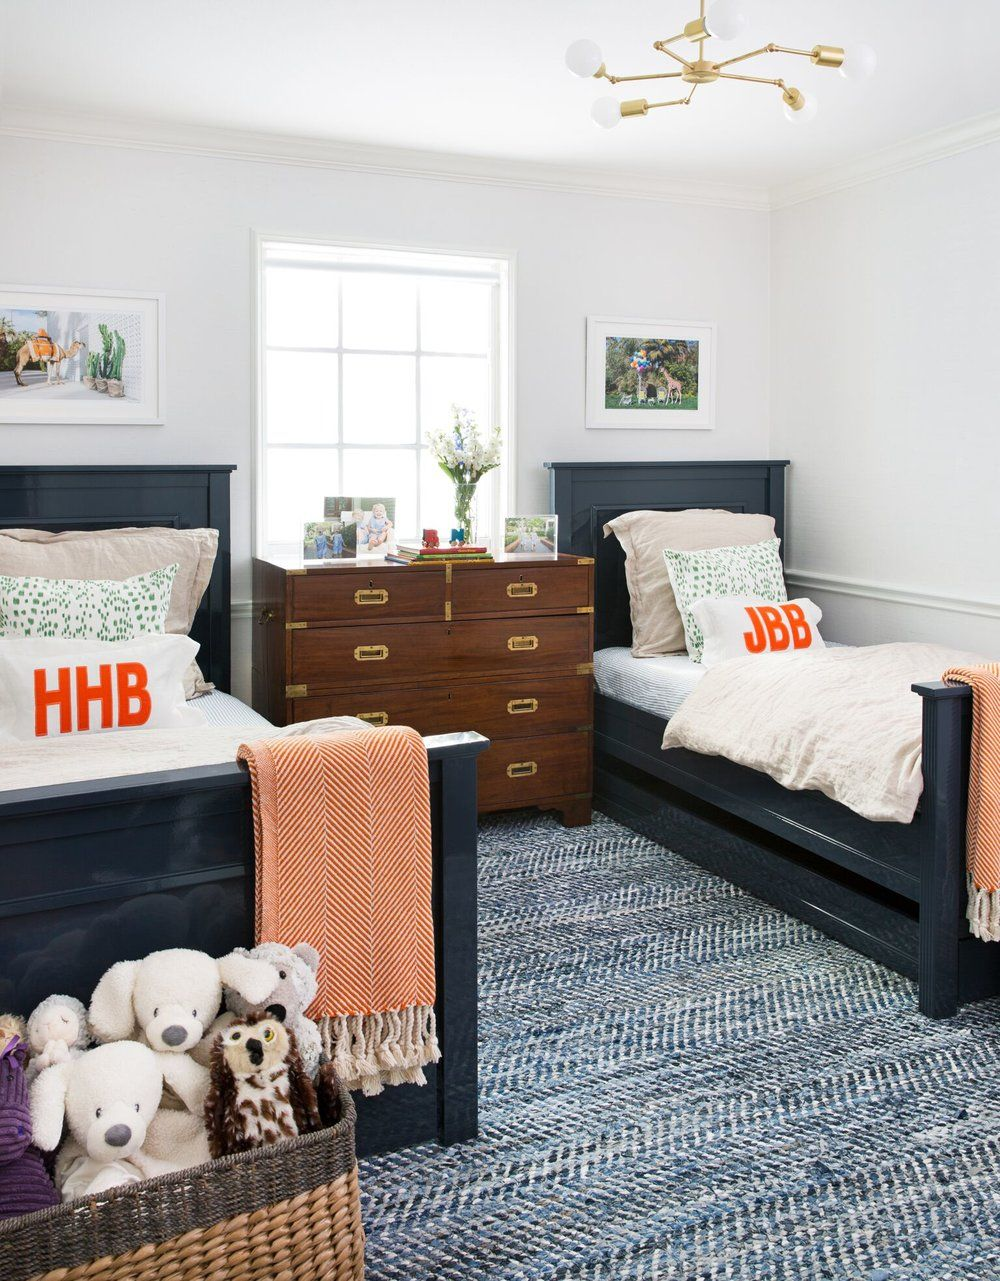 Double Twin Beds And Patterned Textured Rug Jennifer Barron